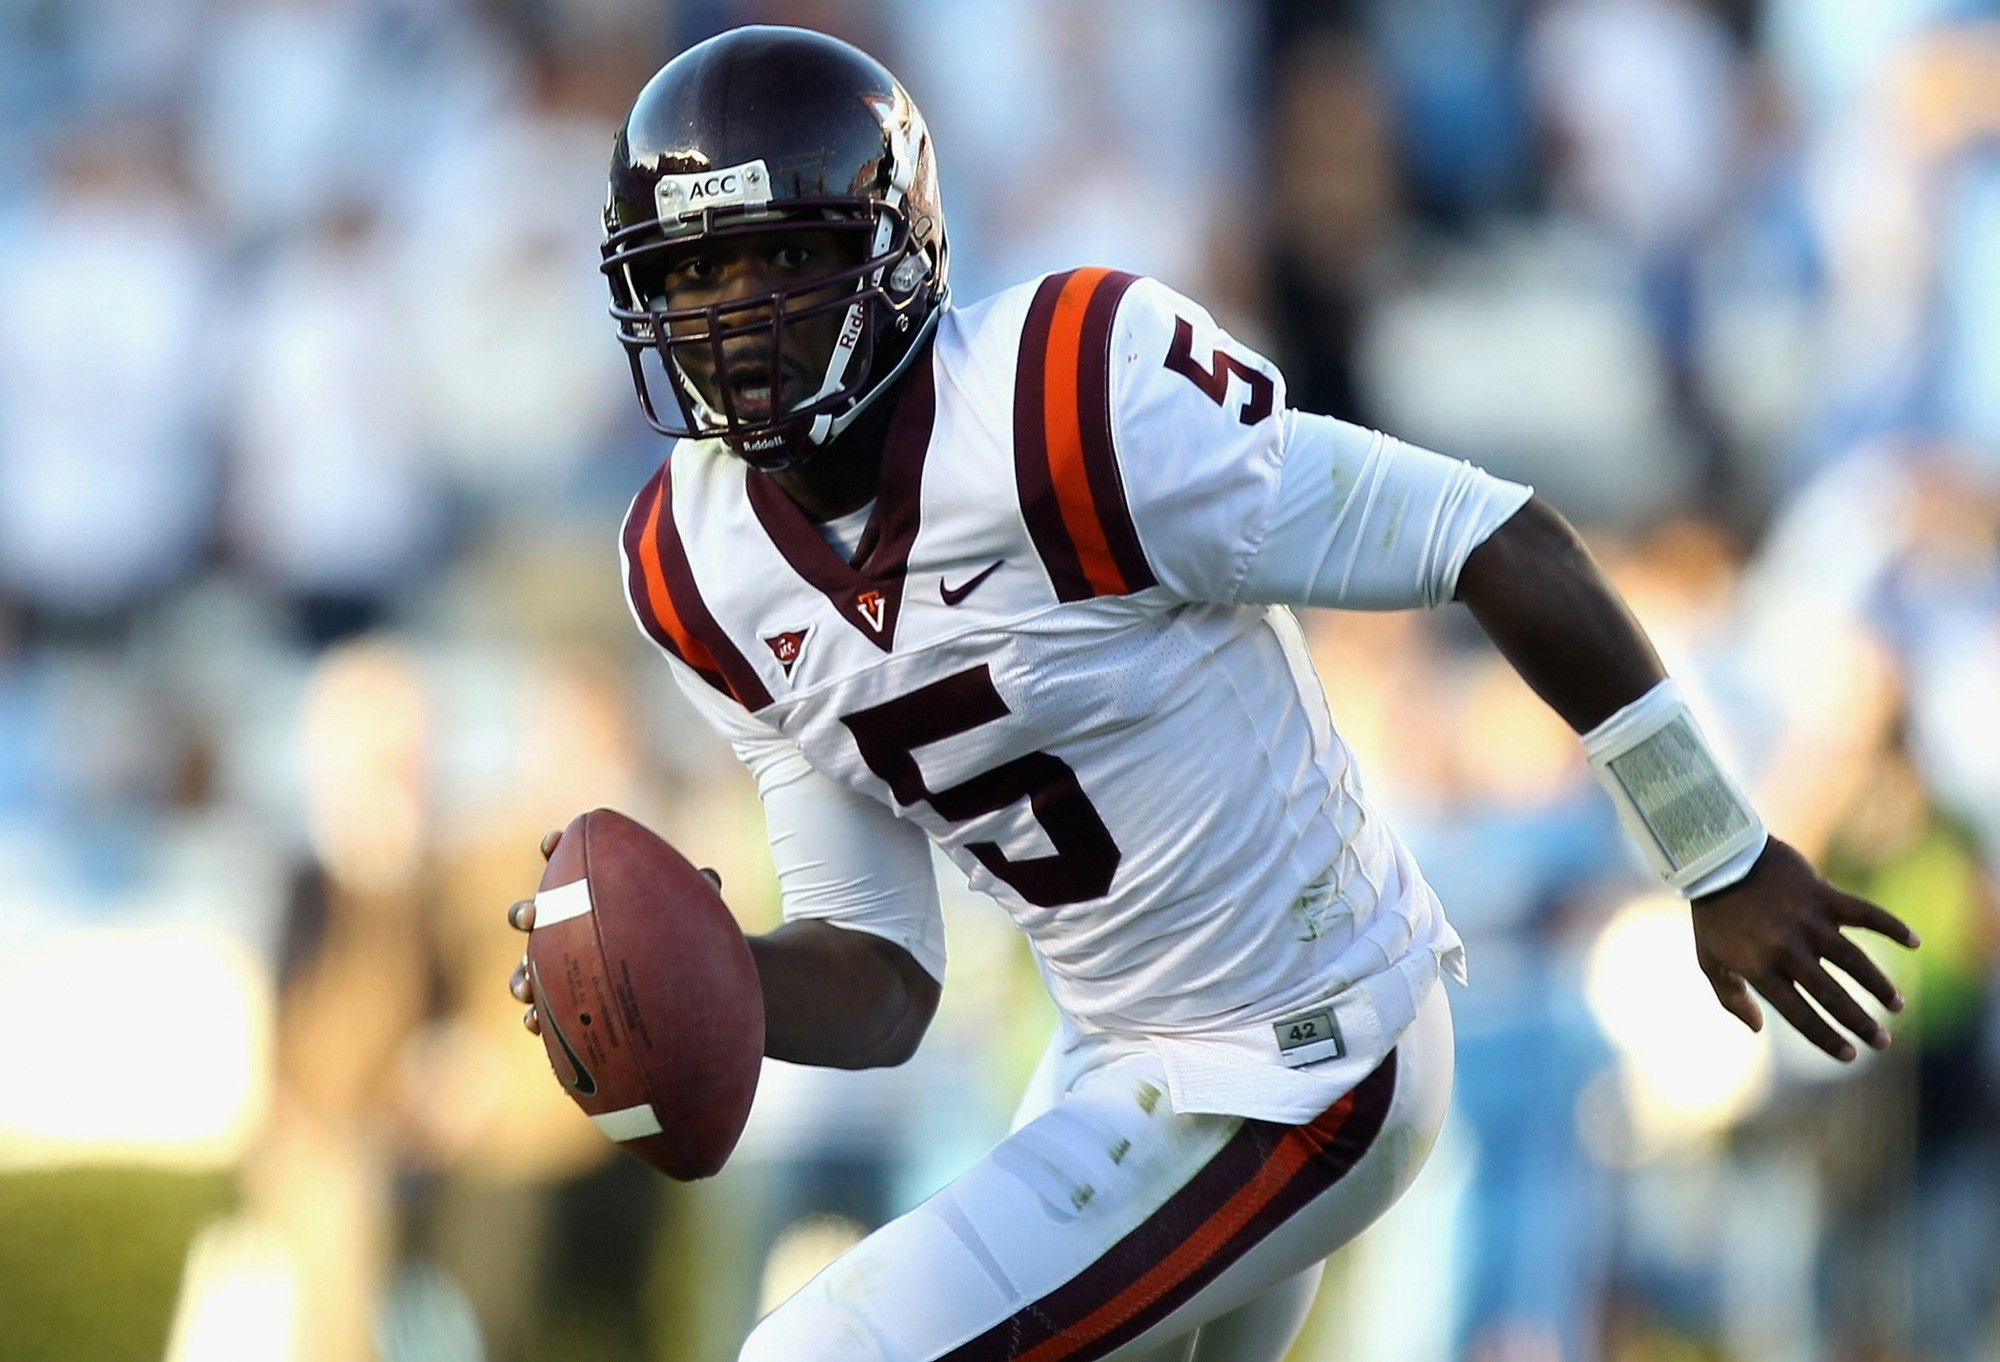 Tyrod Taylor Virginia Tech. Best QB from there since